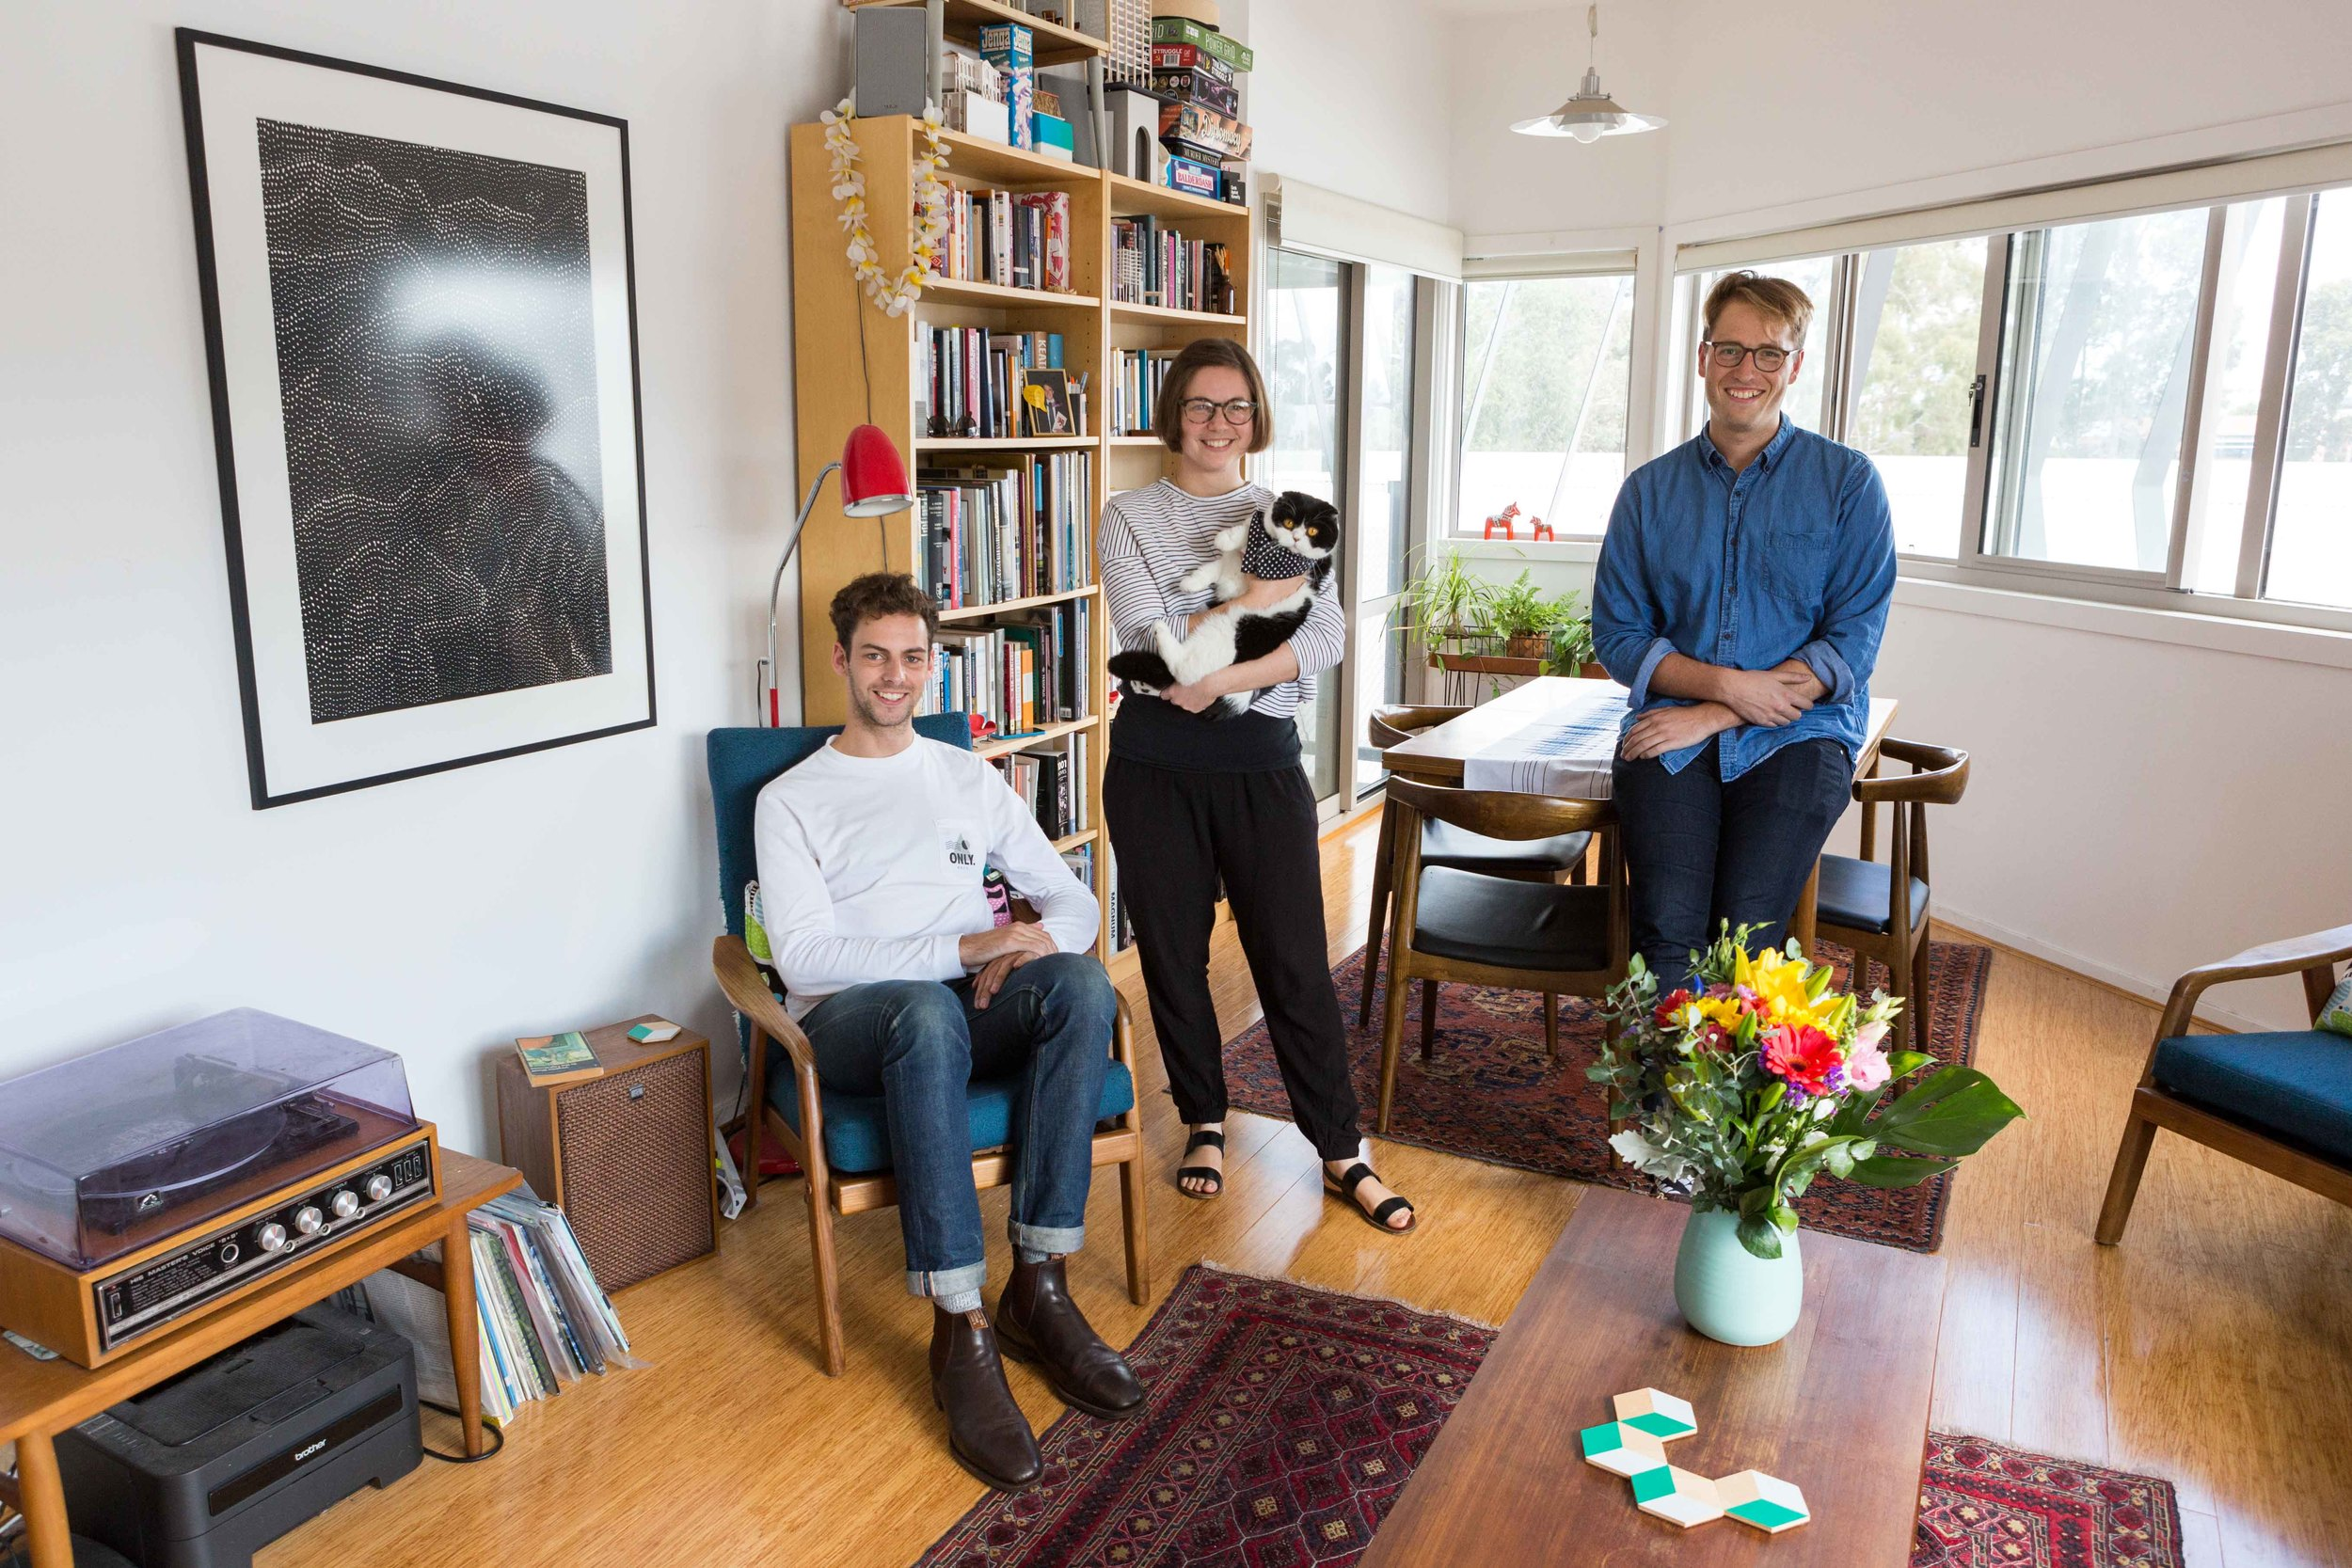 Emily Boutard, Simon McKenzie and Patrick Darby at home